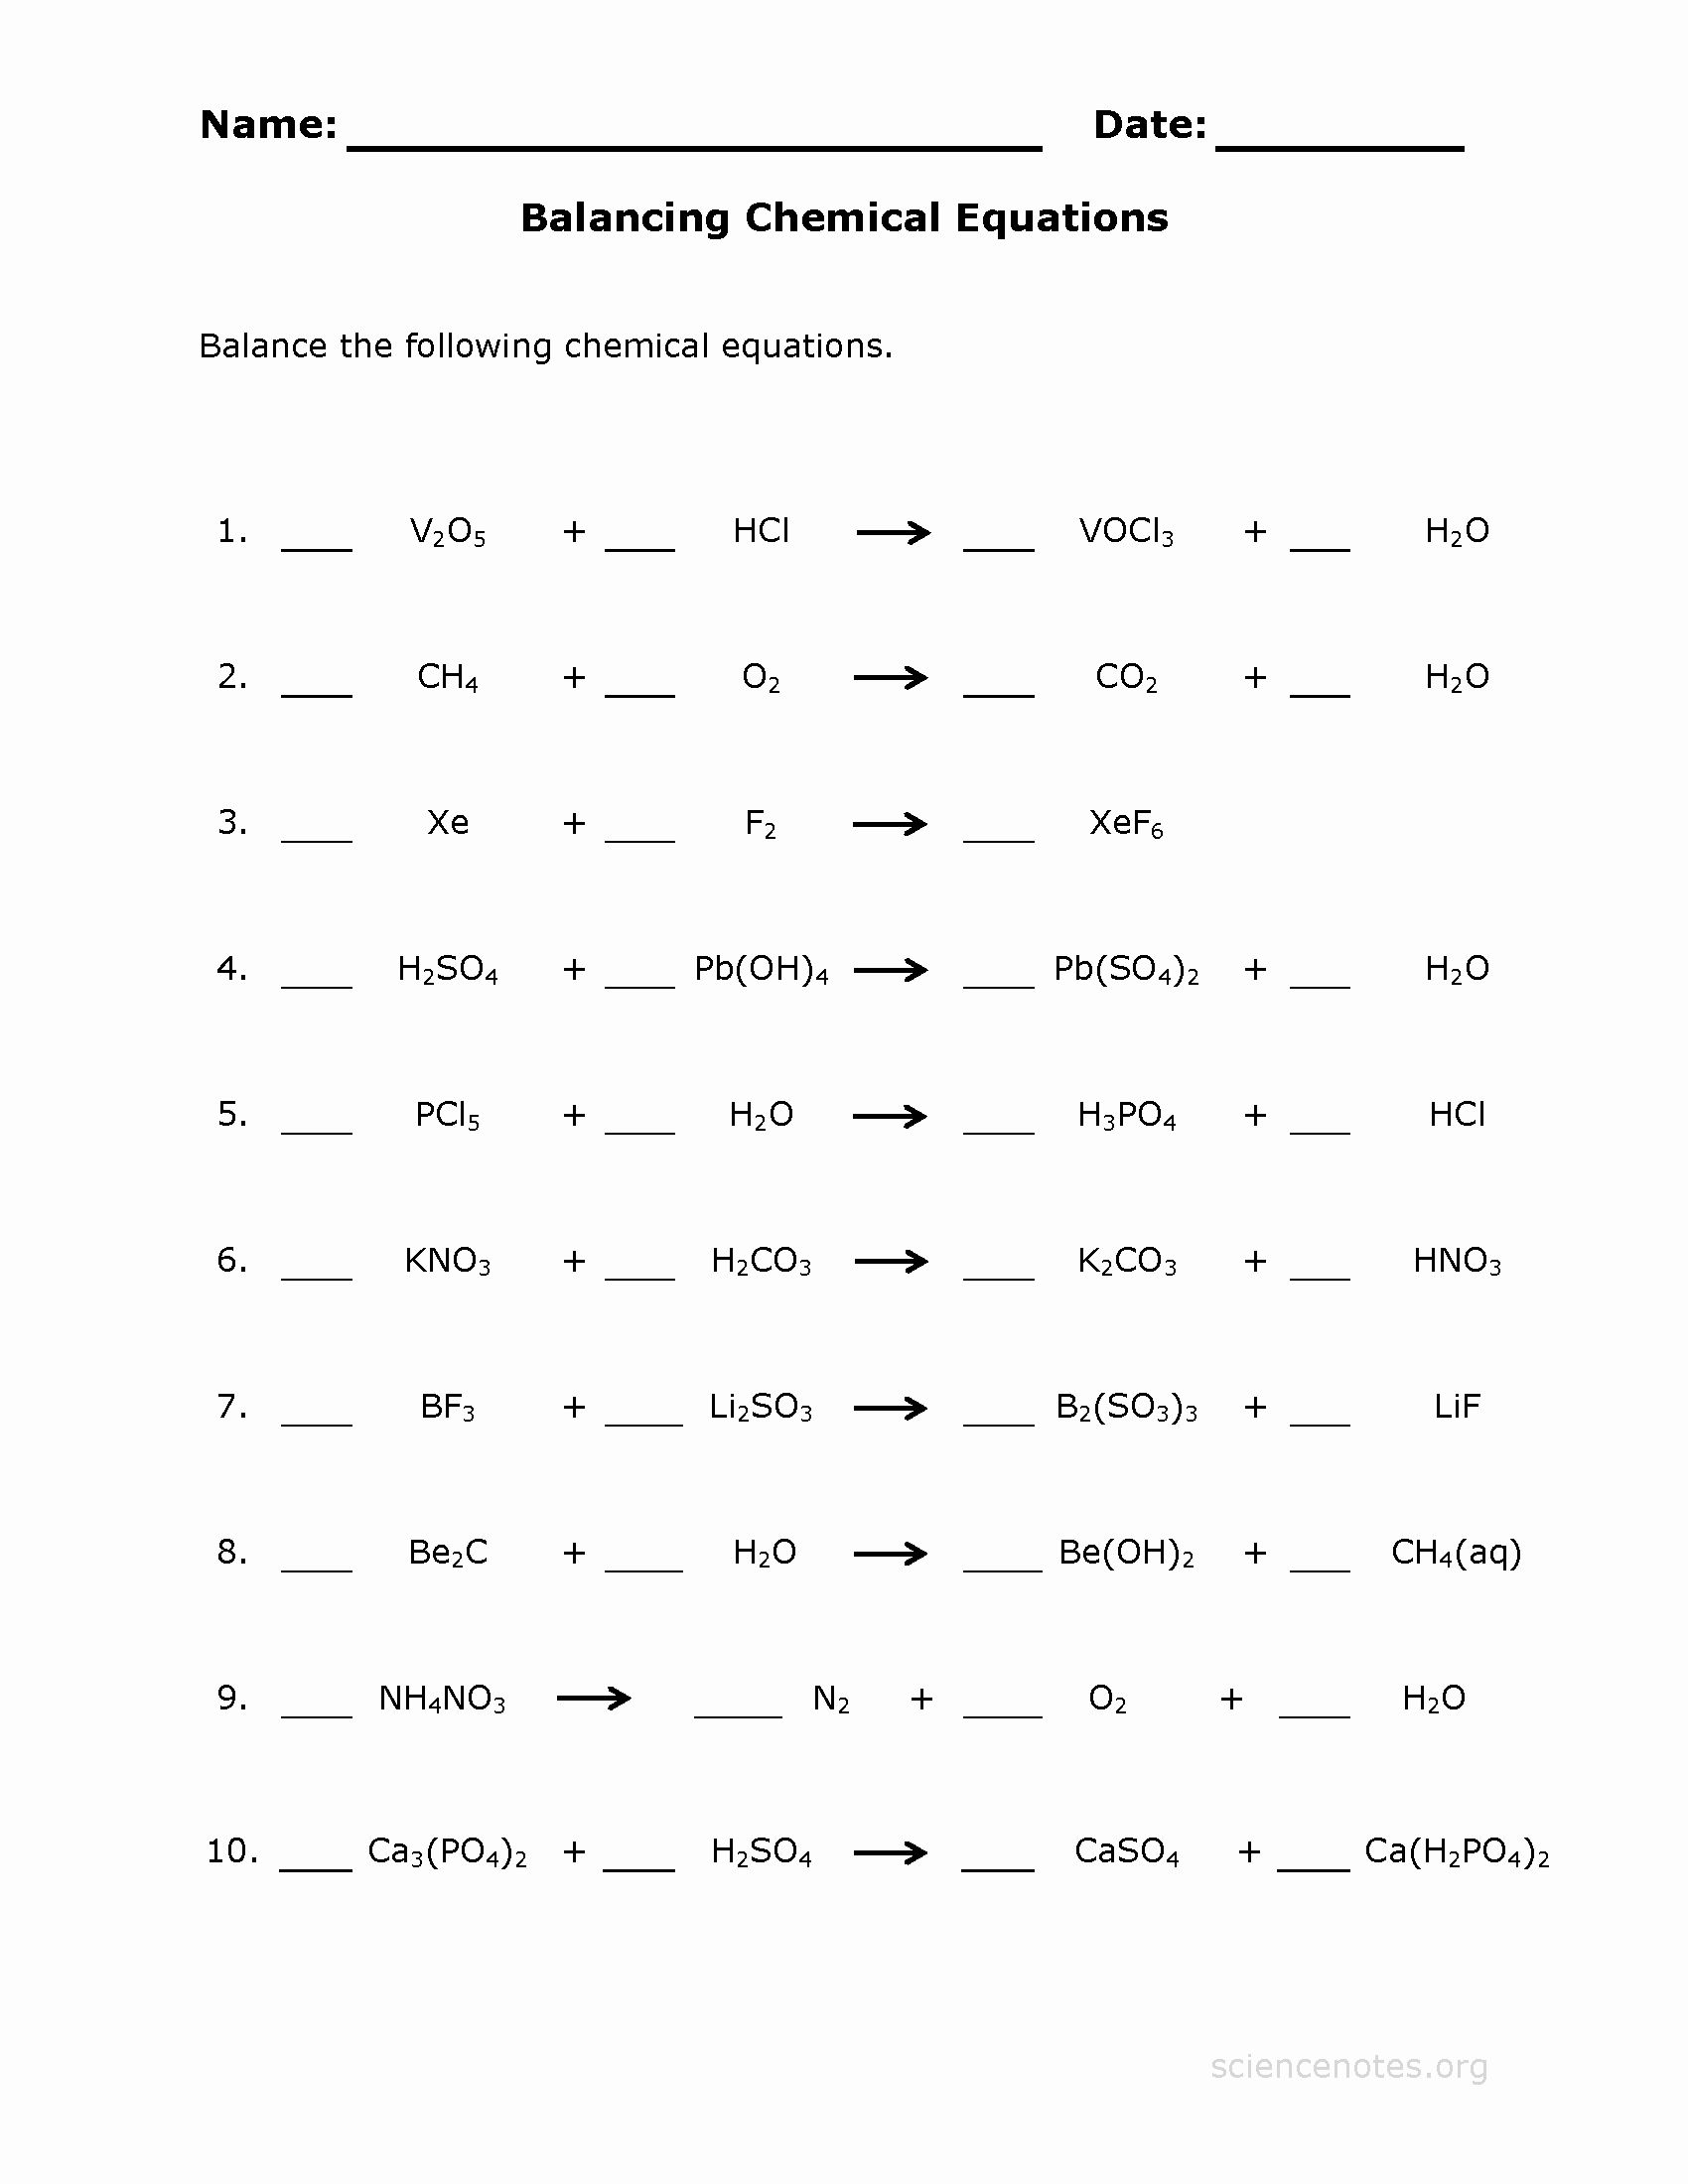 Balancing Equations Worksheet Answers Awesome Balancing